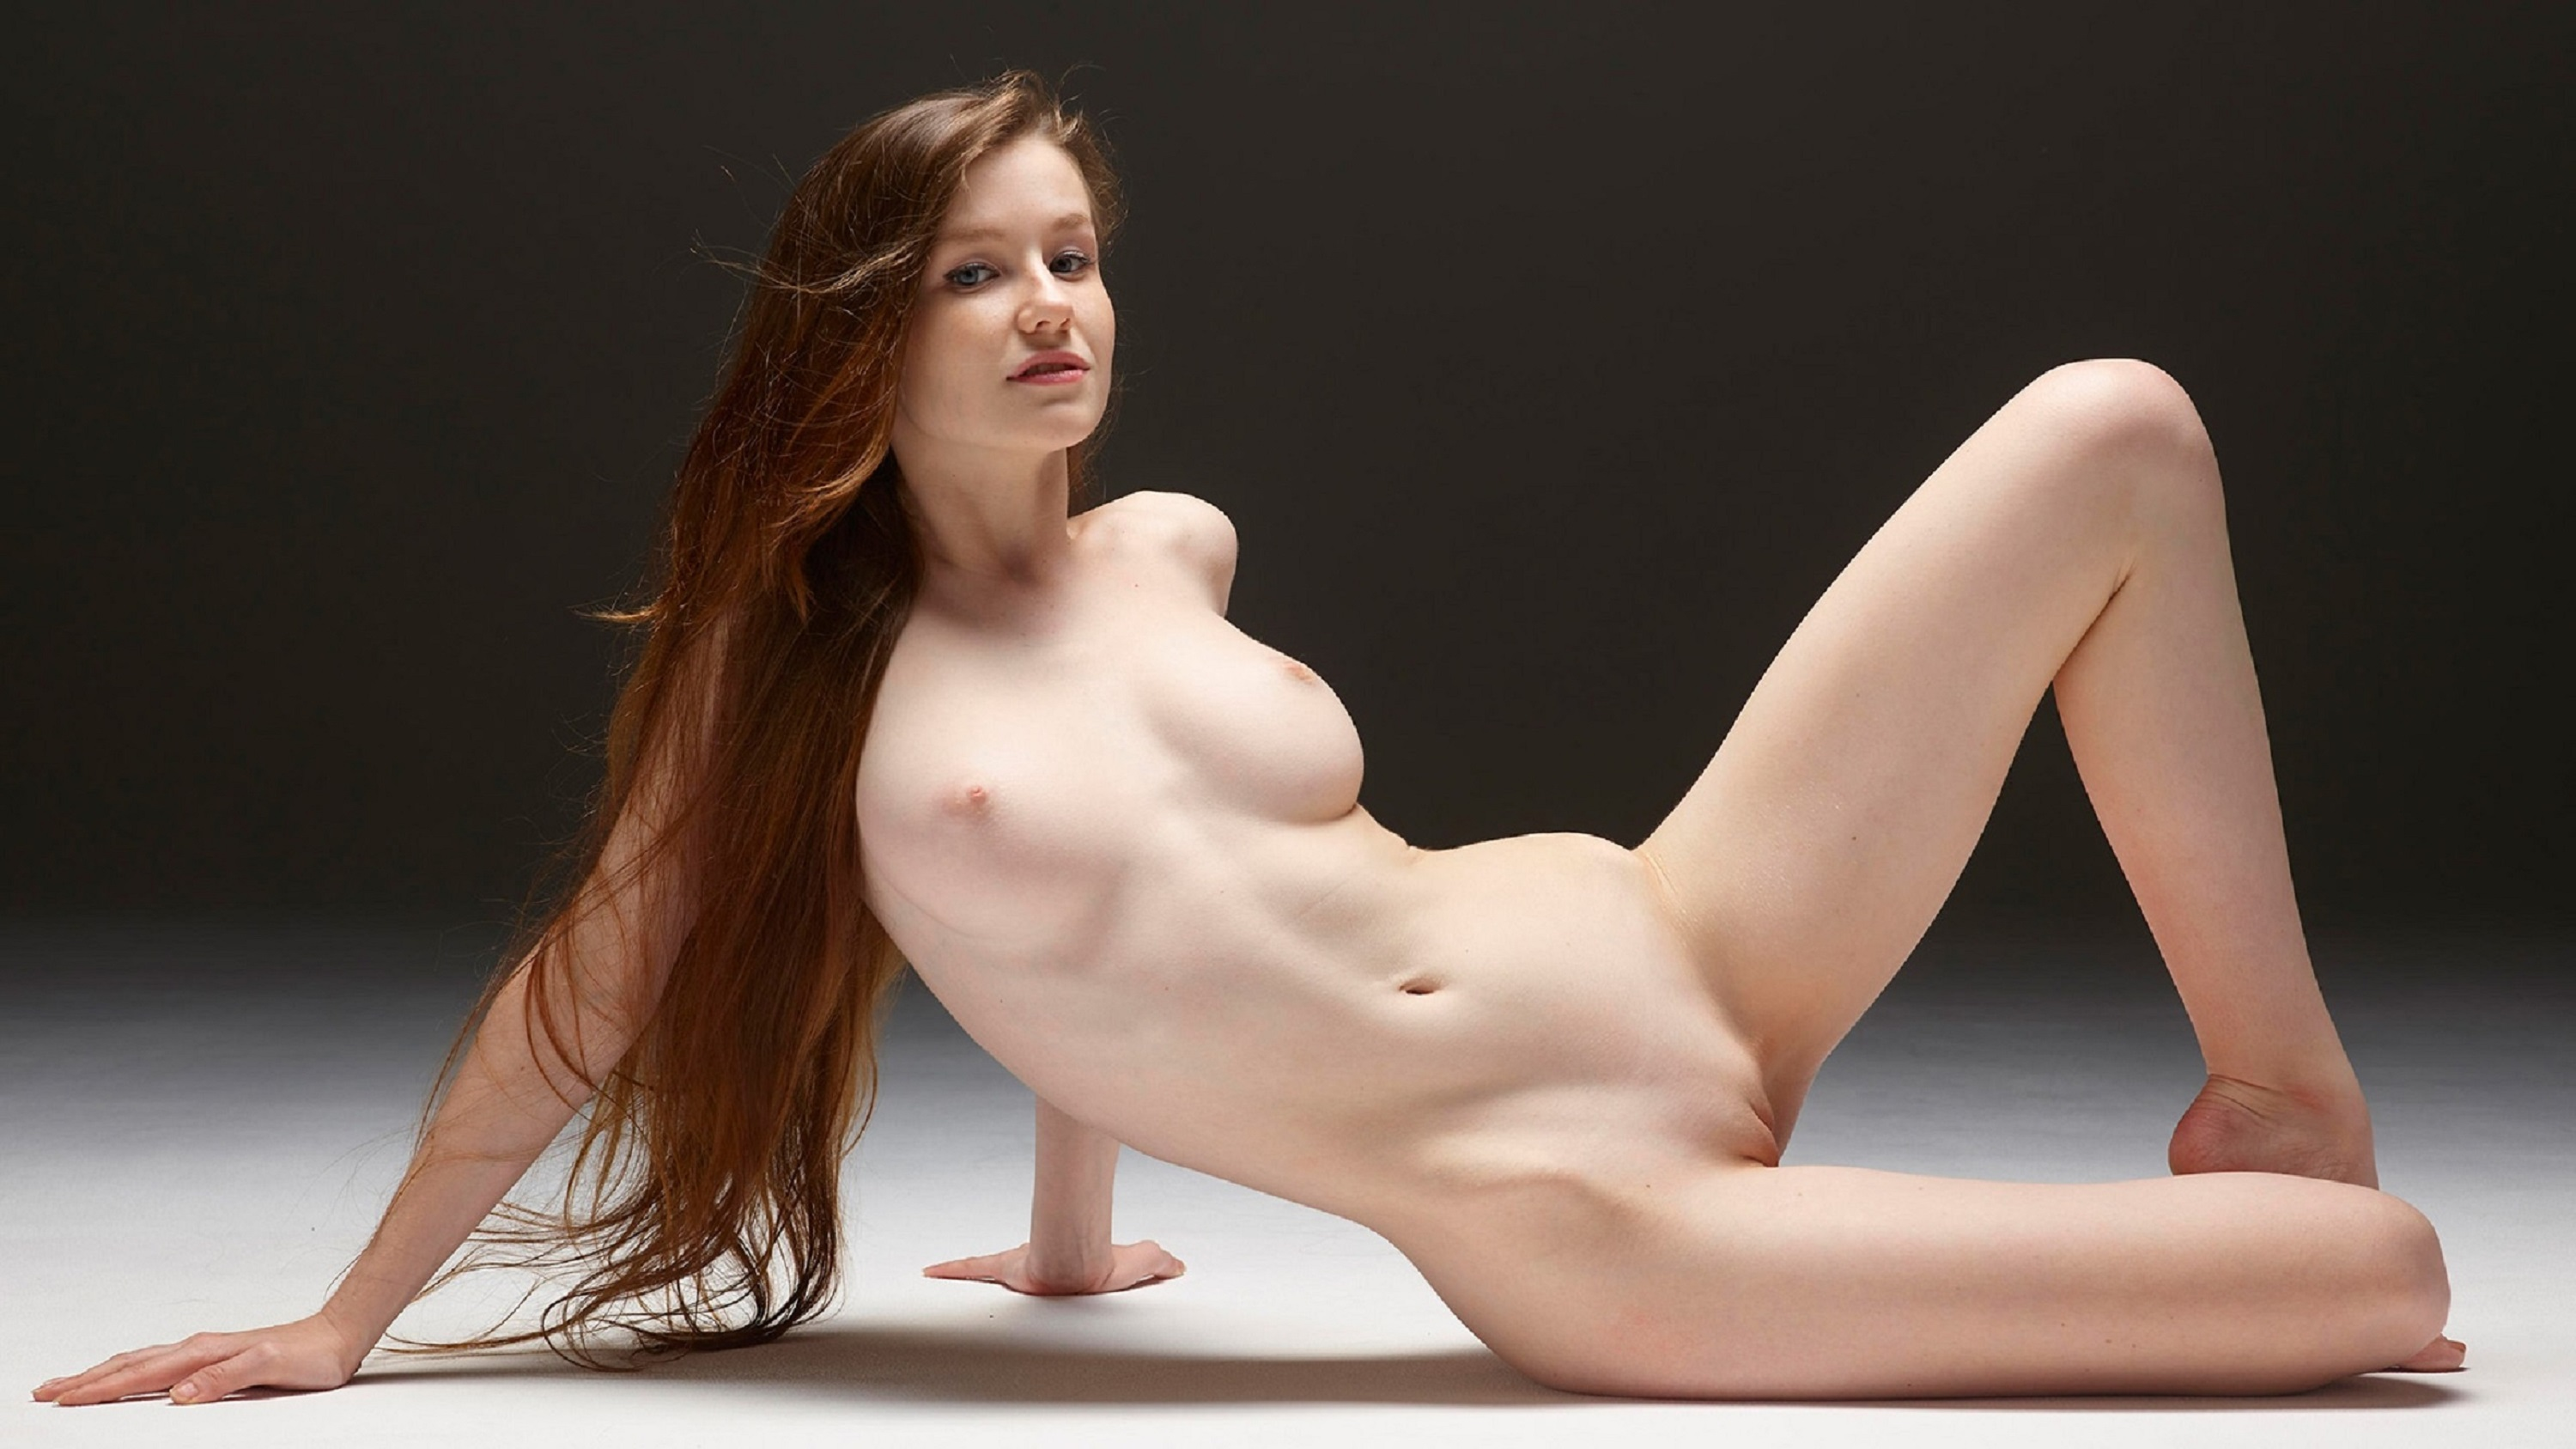 Suffer nude models, incredible topless video